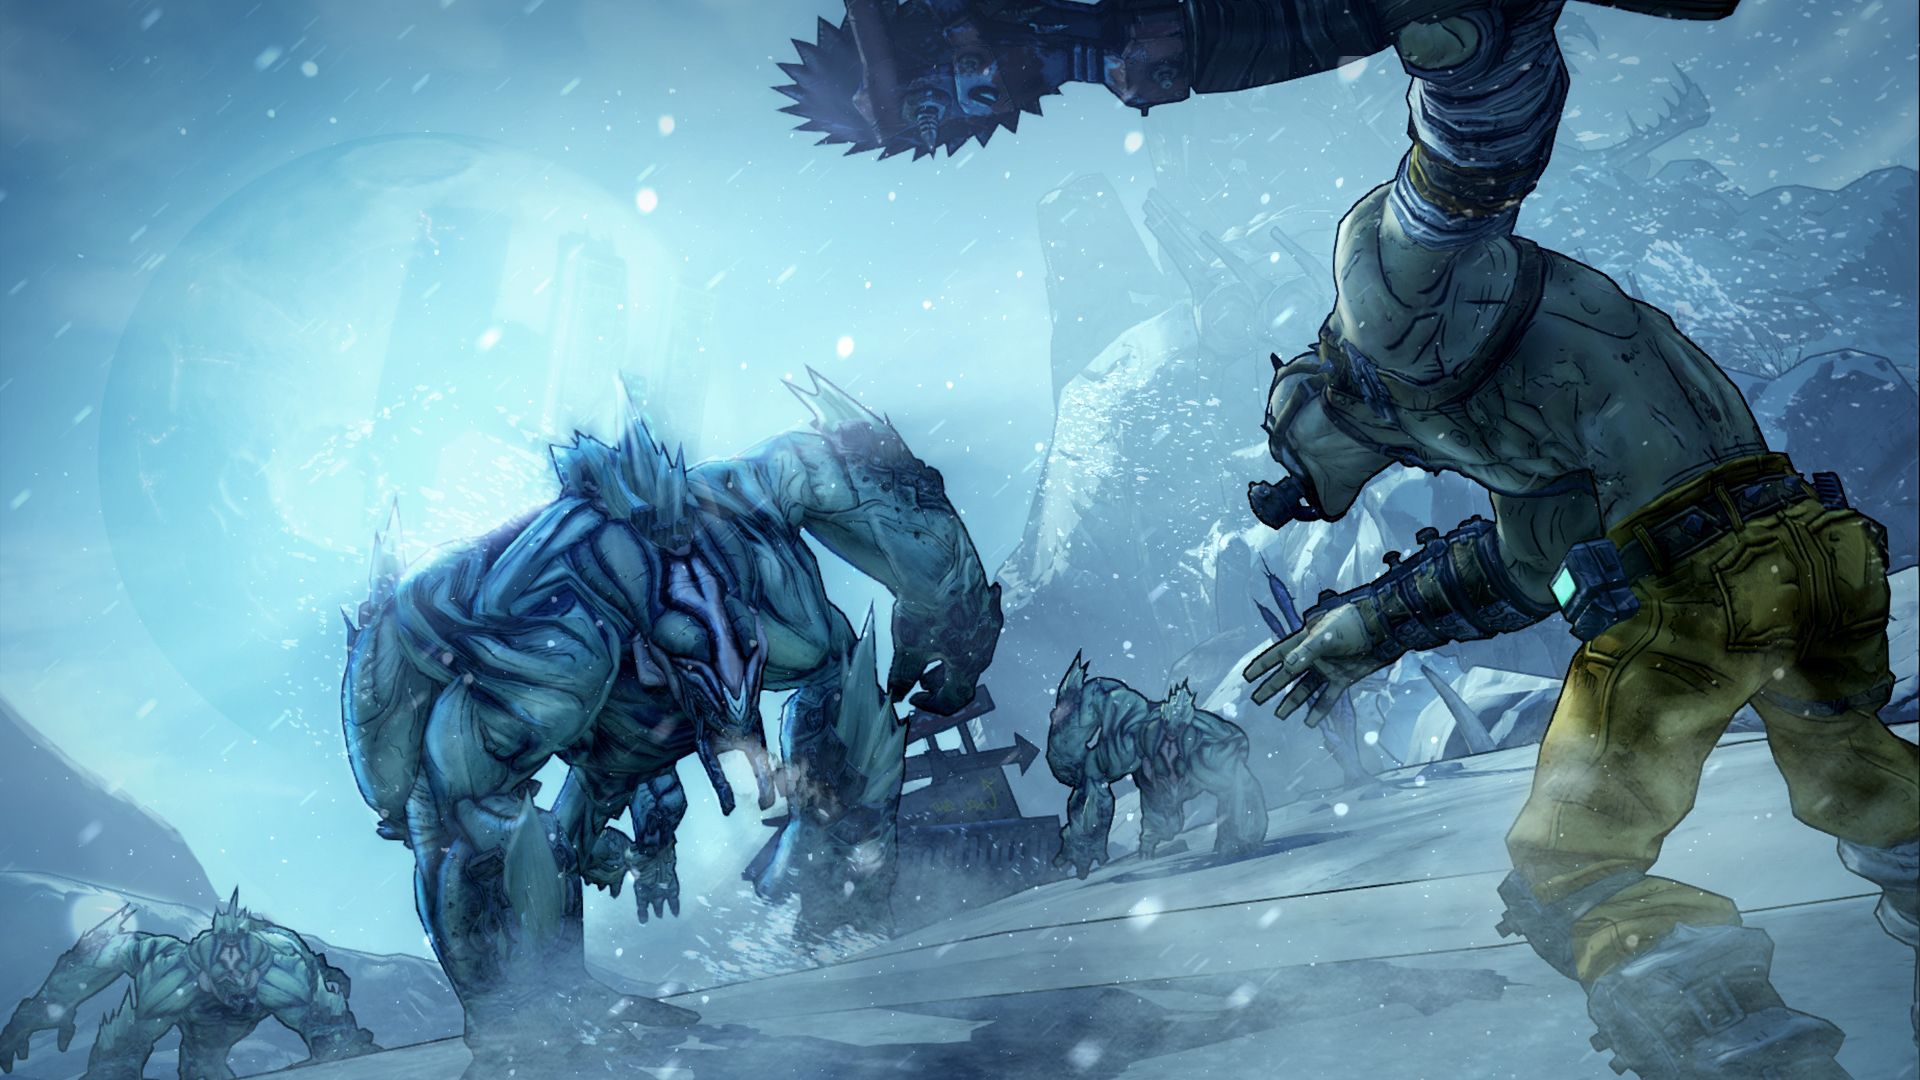 krieg borderlands 2 wallpaper hd 6 hd quality wallpapers full size